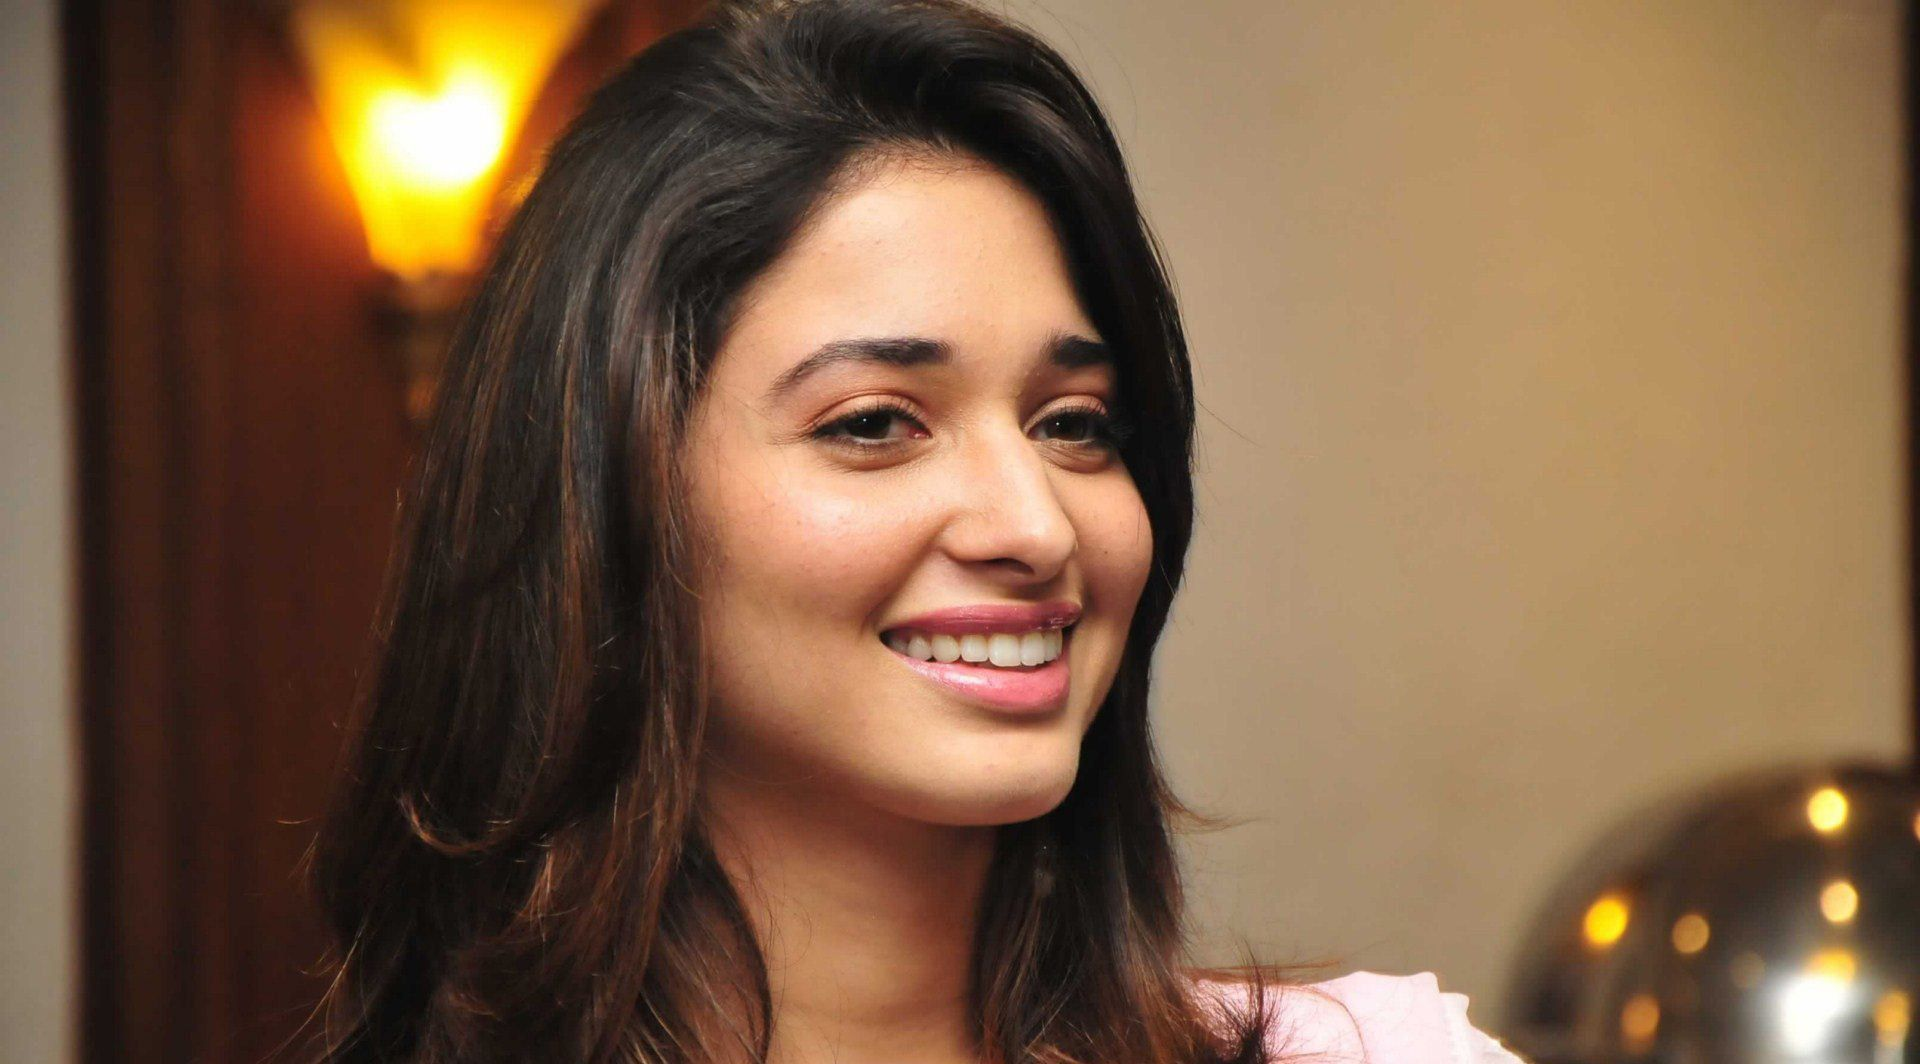 Smiling tamanna Bhatia HD wallpaper for download